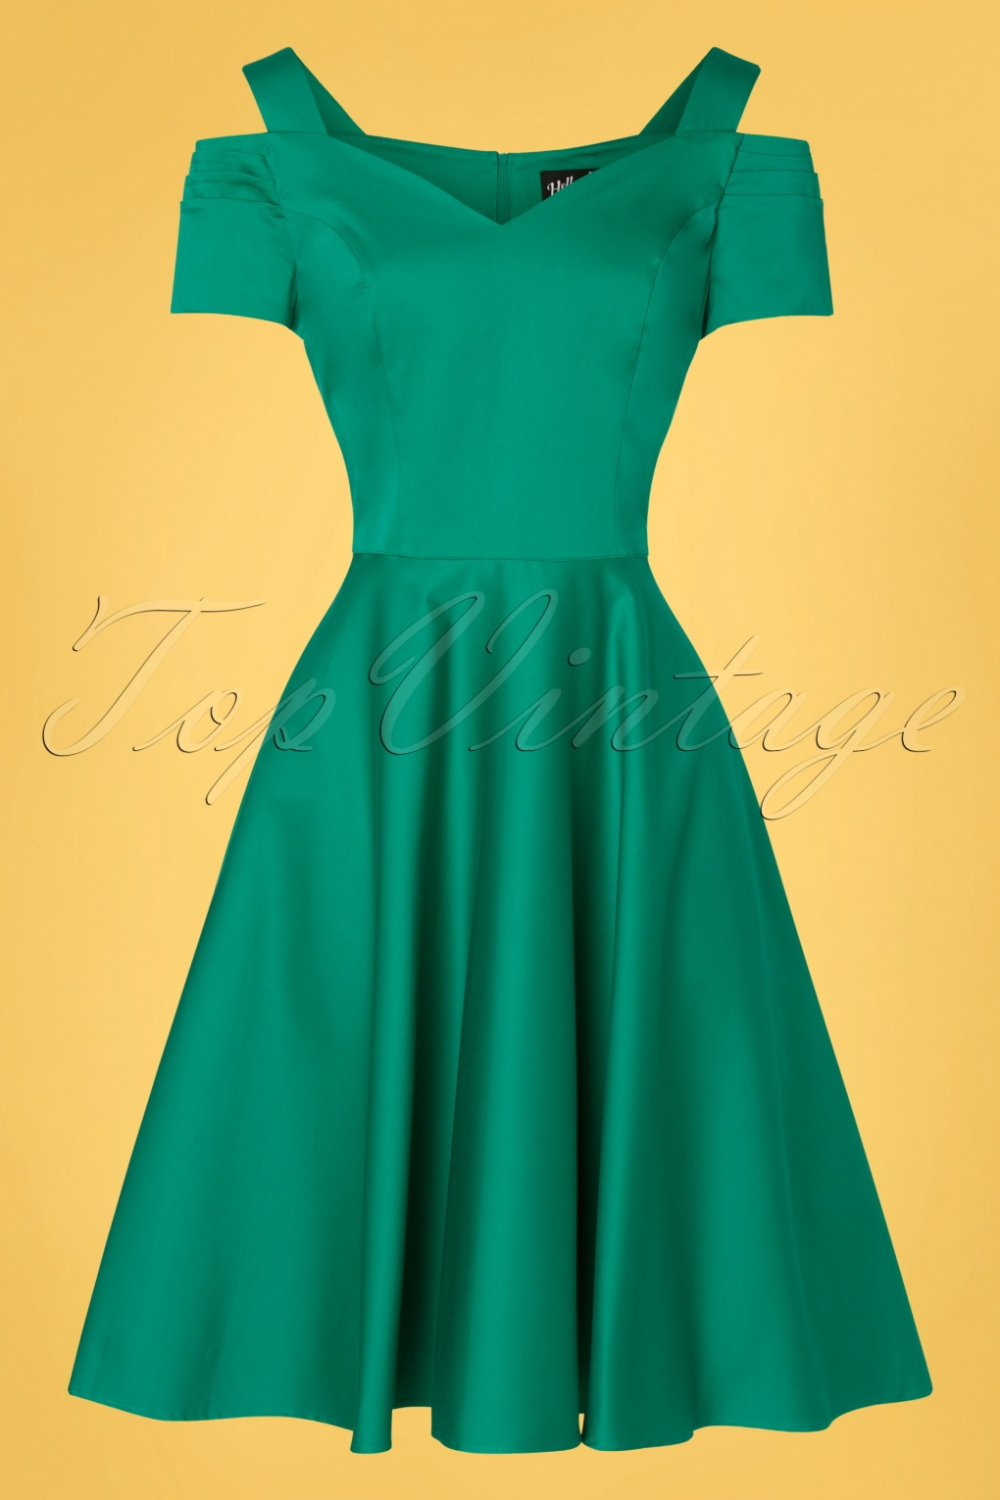 This 50s Helen Swing Dress In Sea Green Is Elegant With A Sassy Twist The Fitted Bodice Is Styled With A Sweetheart Neckline A Dresses Swing Dress Swing Skirt [ 1500 x 1000 Pixel ]